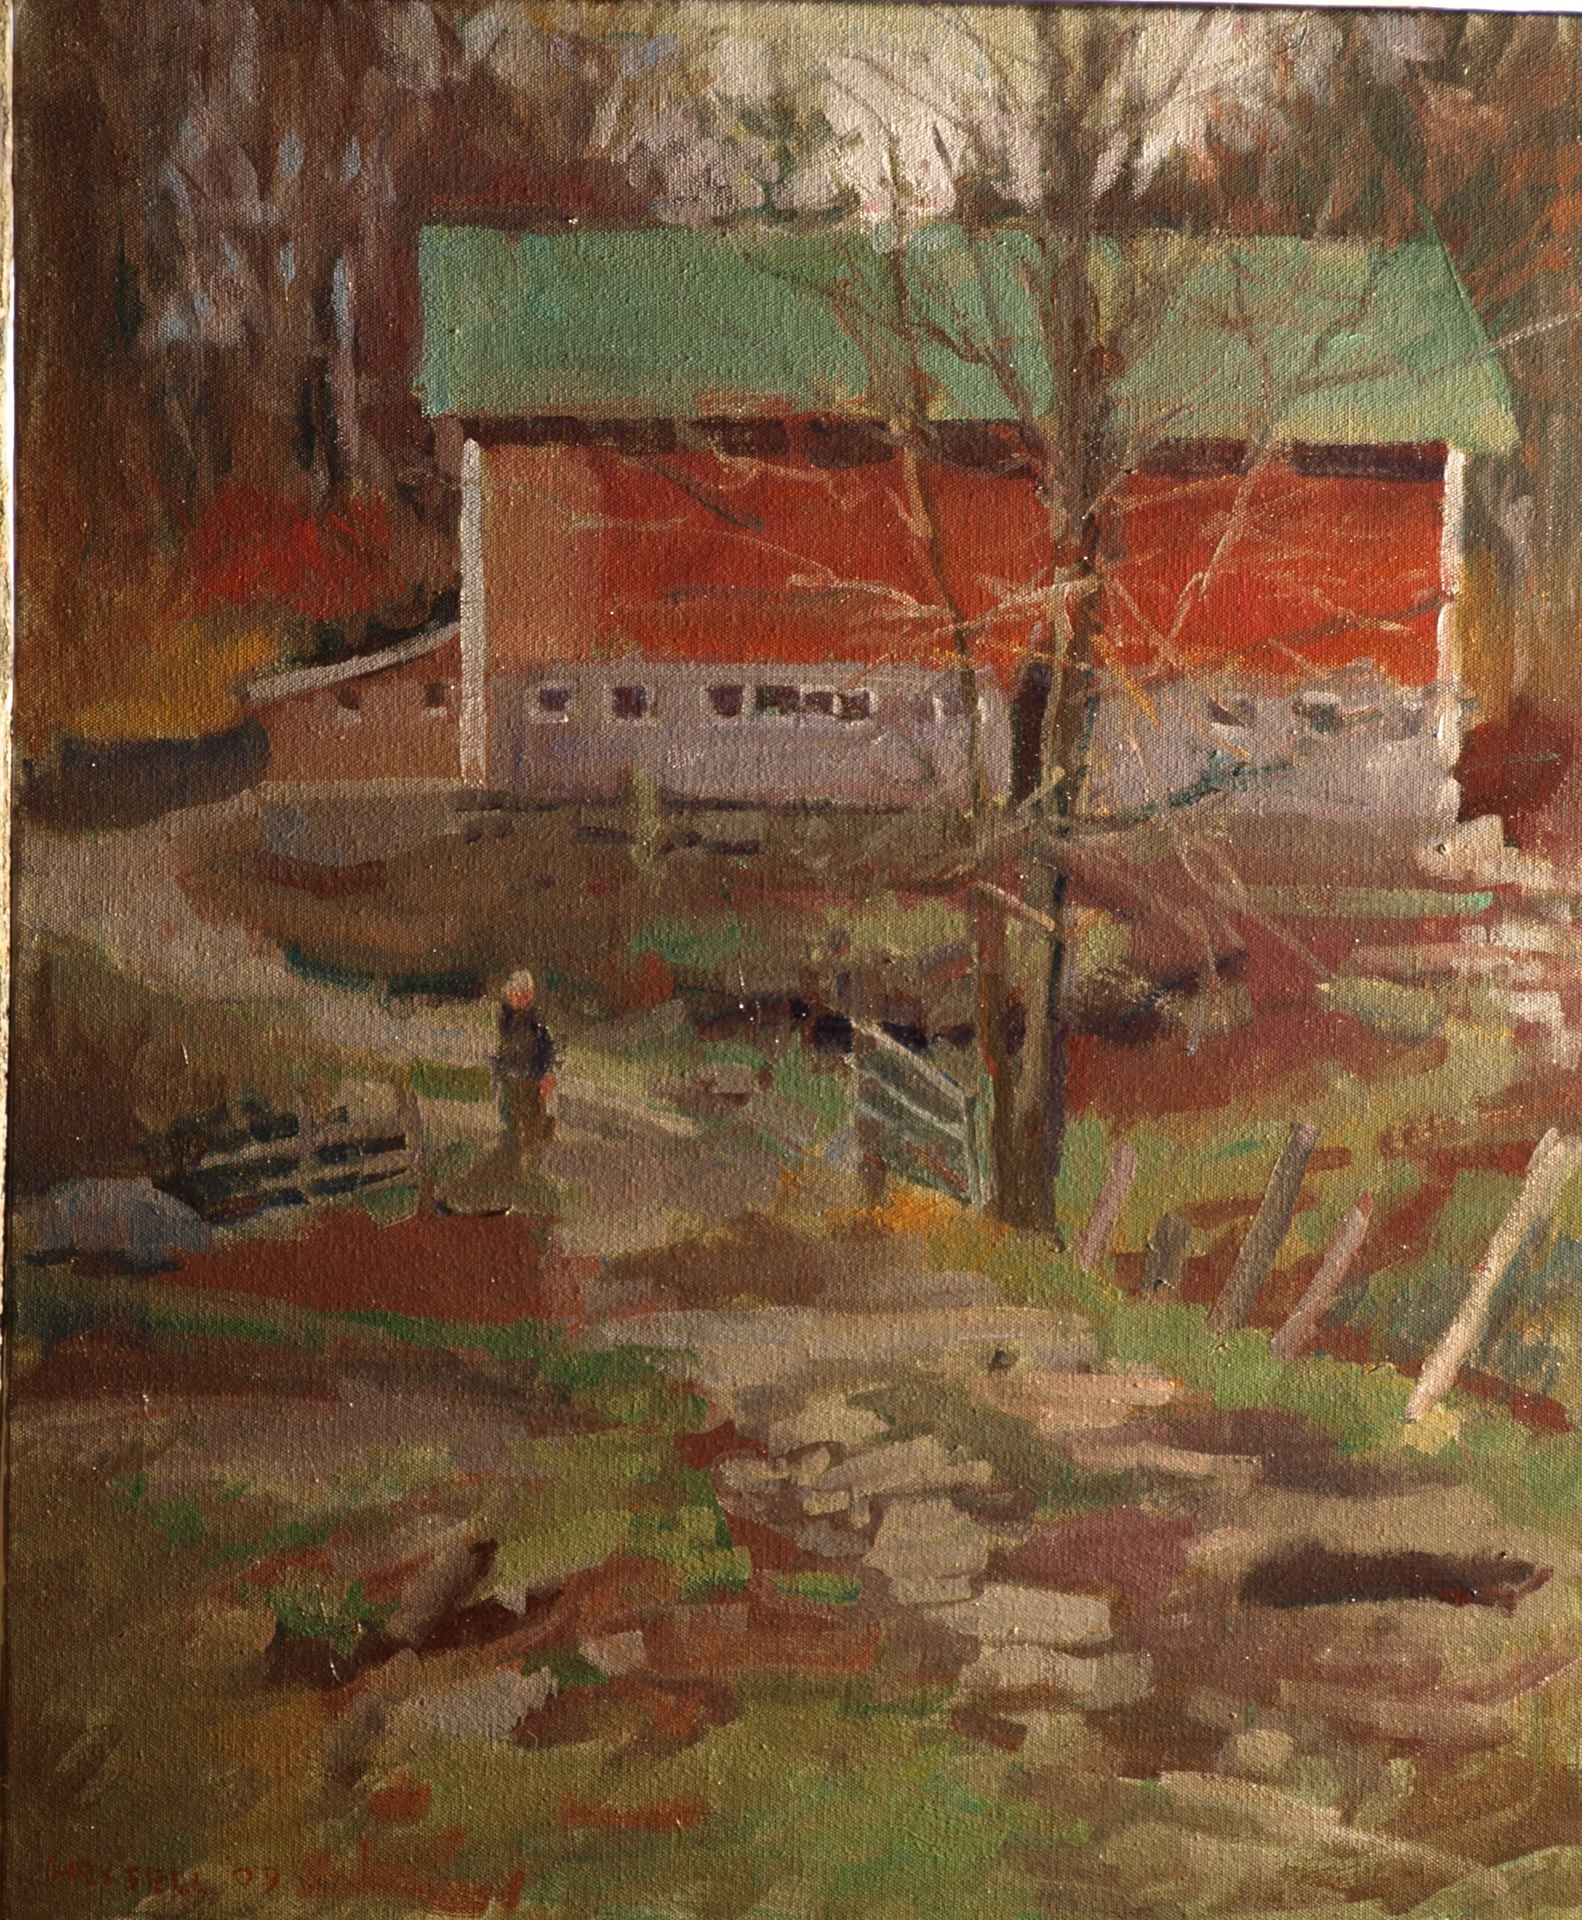 Farm Road, Oil on Canvas, 24 x 20 Inches, by Susan Grisell, $650